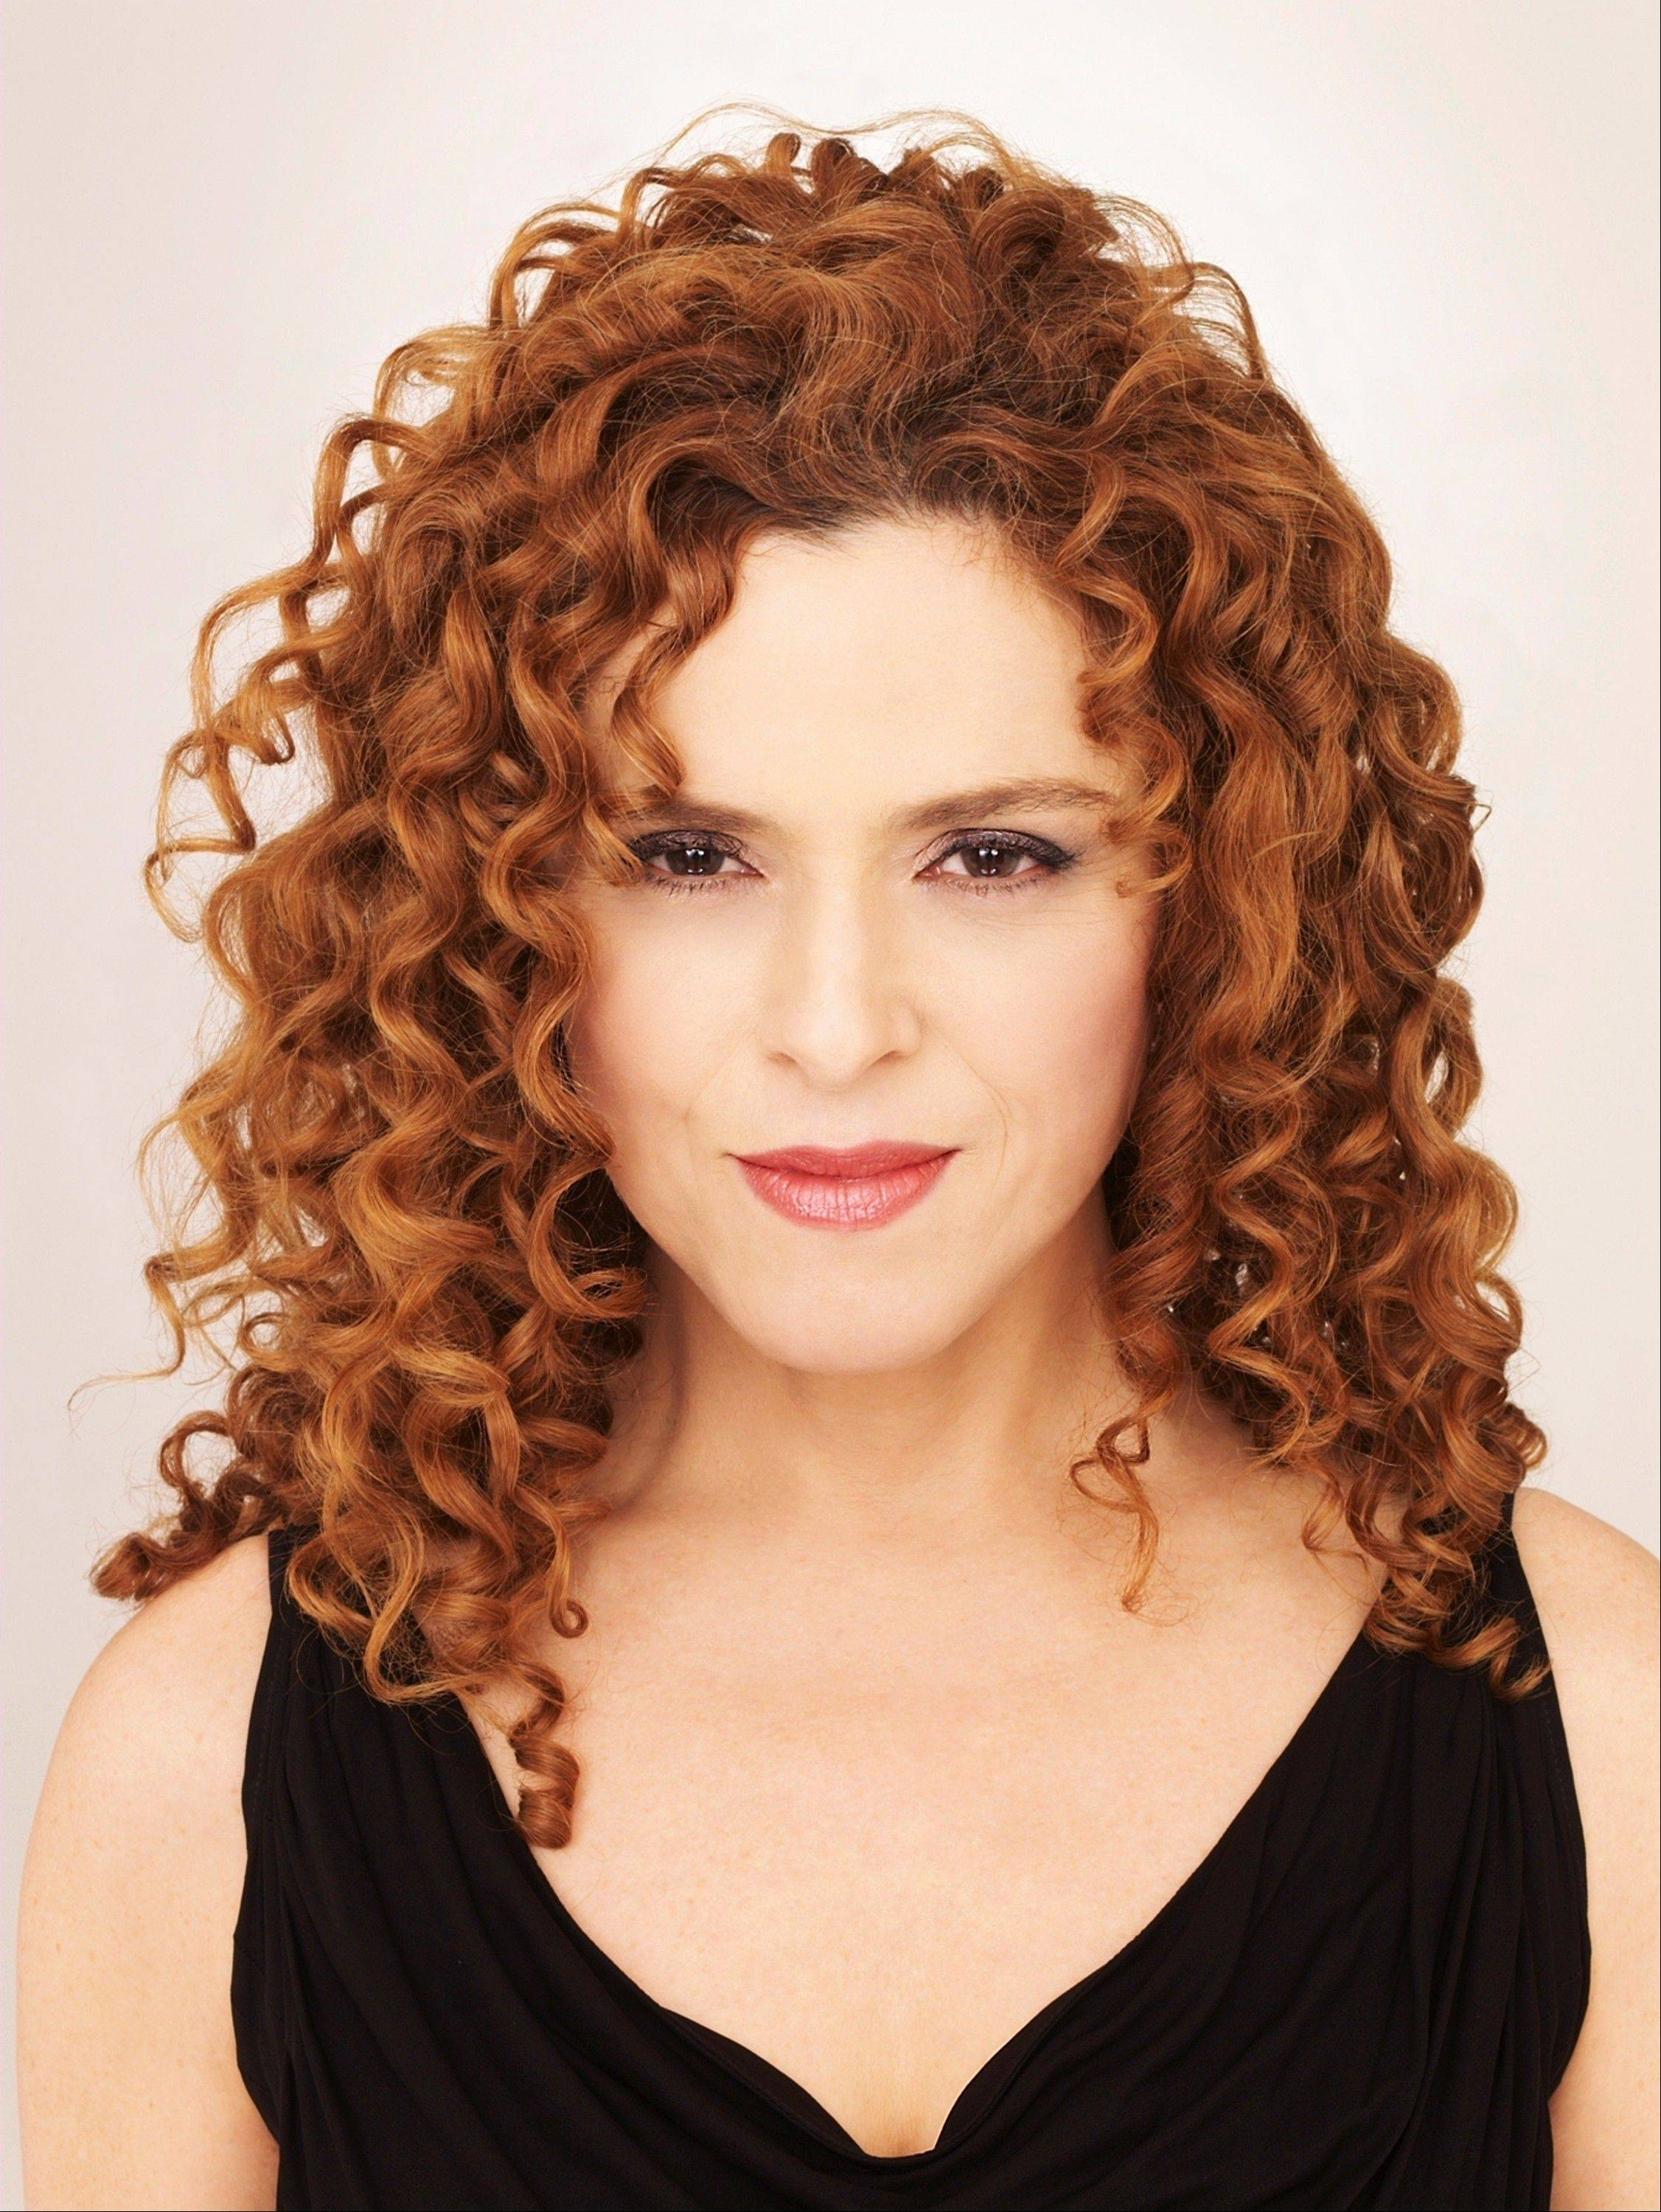 Tony Award-winning Broadway star Bernadette Peters will perform a Valentine's Day concert at the Genesee Theatre.